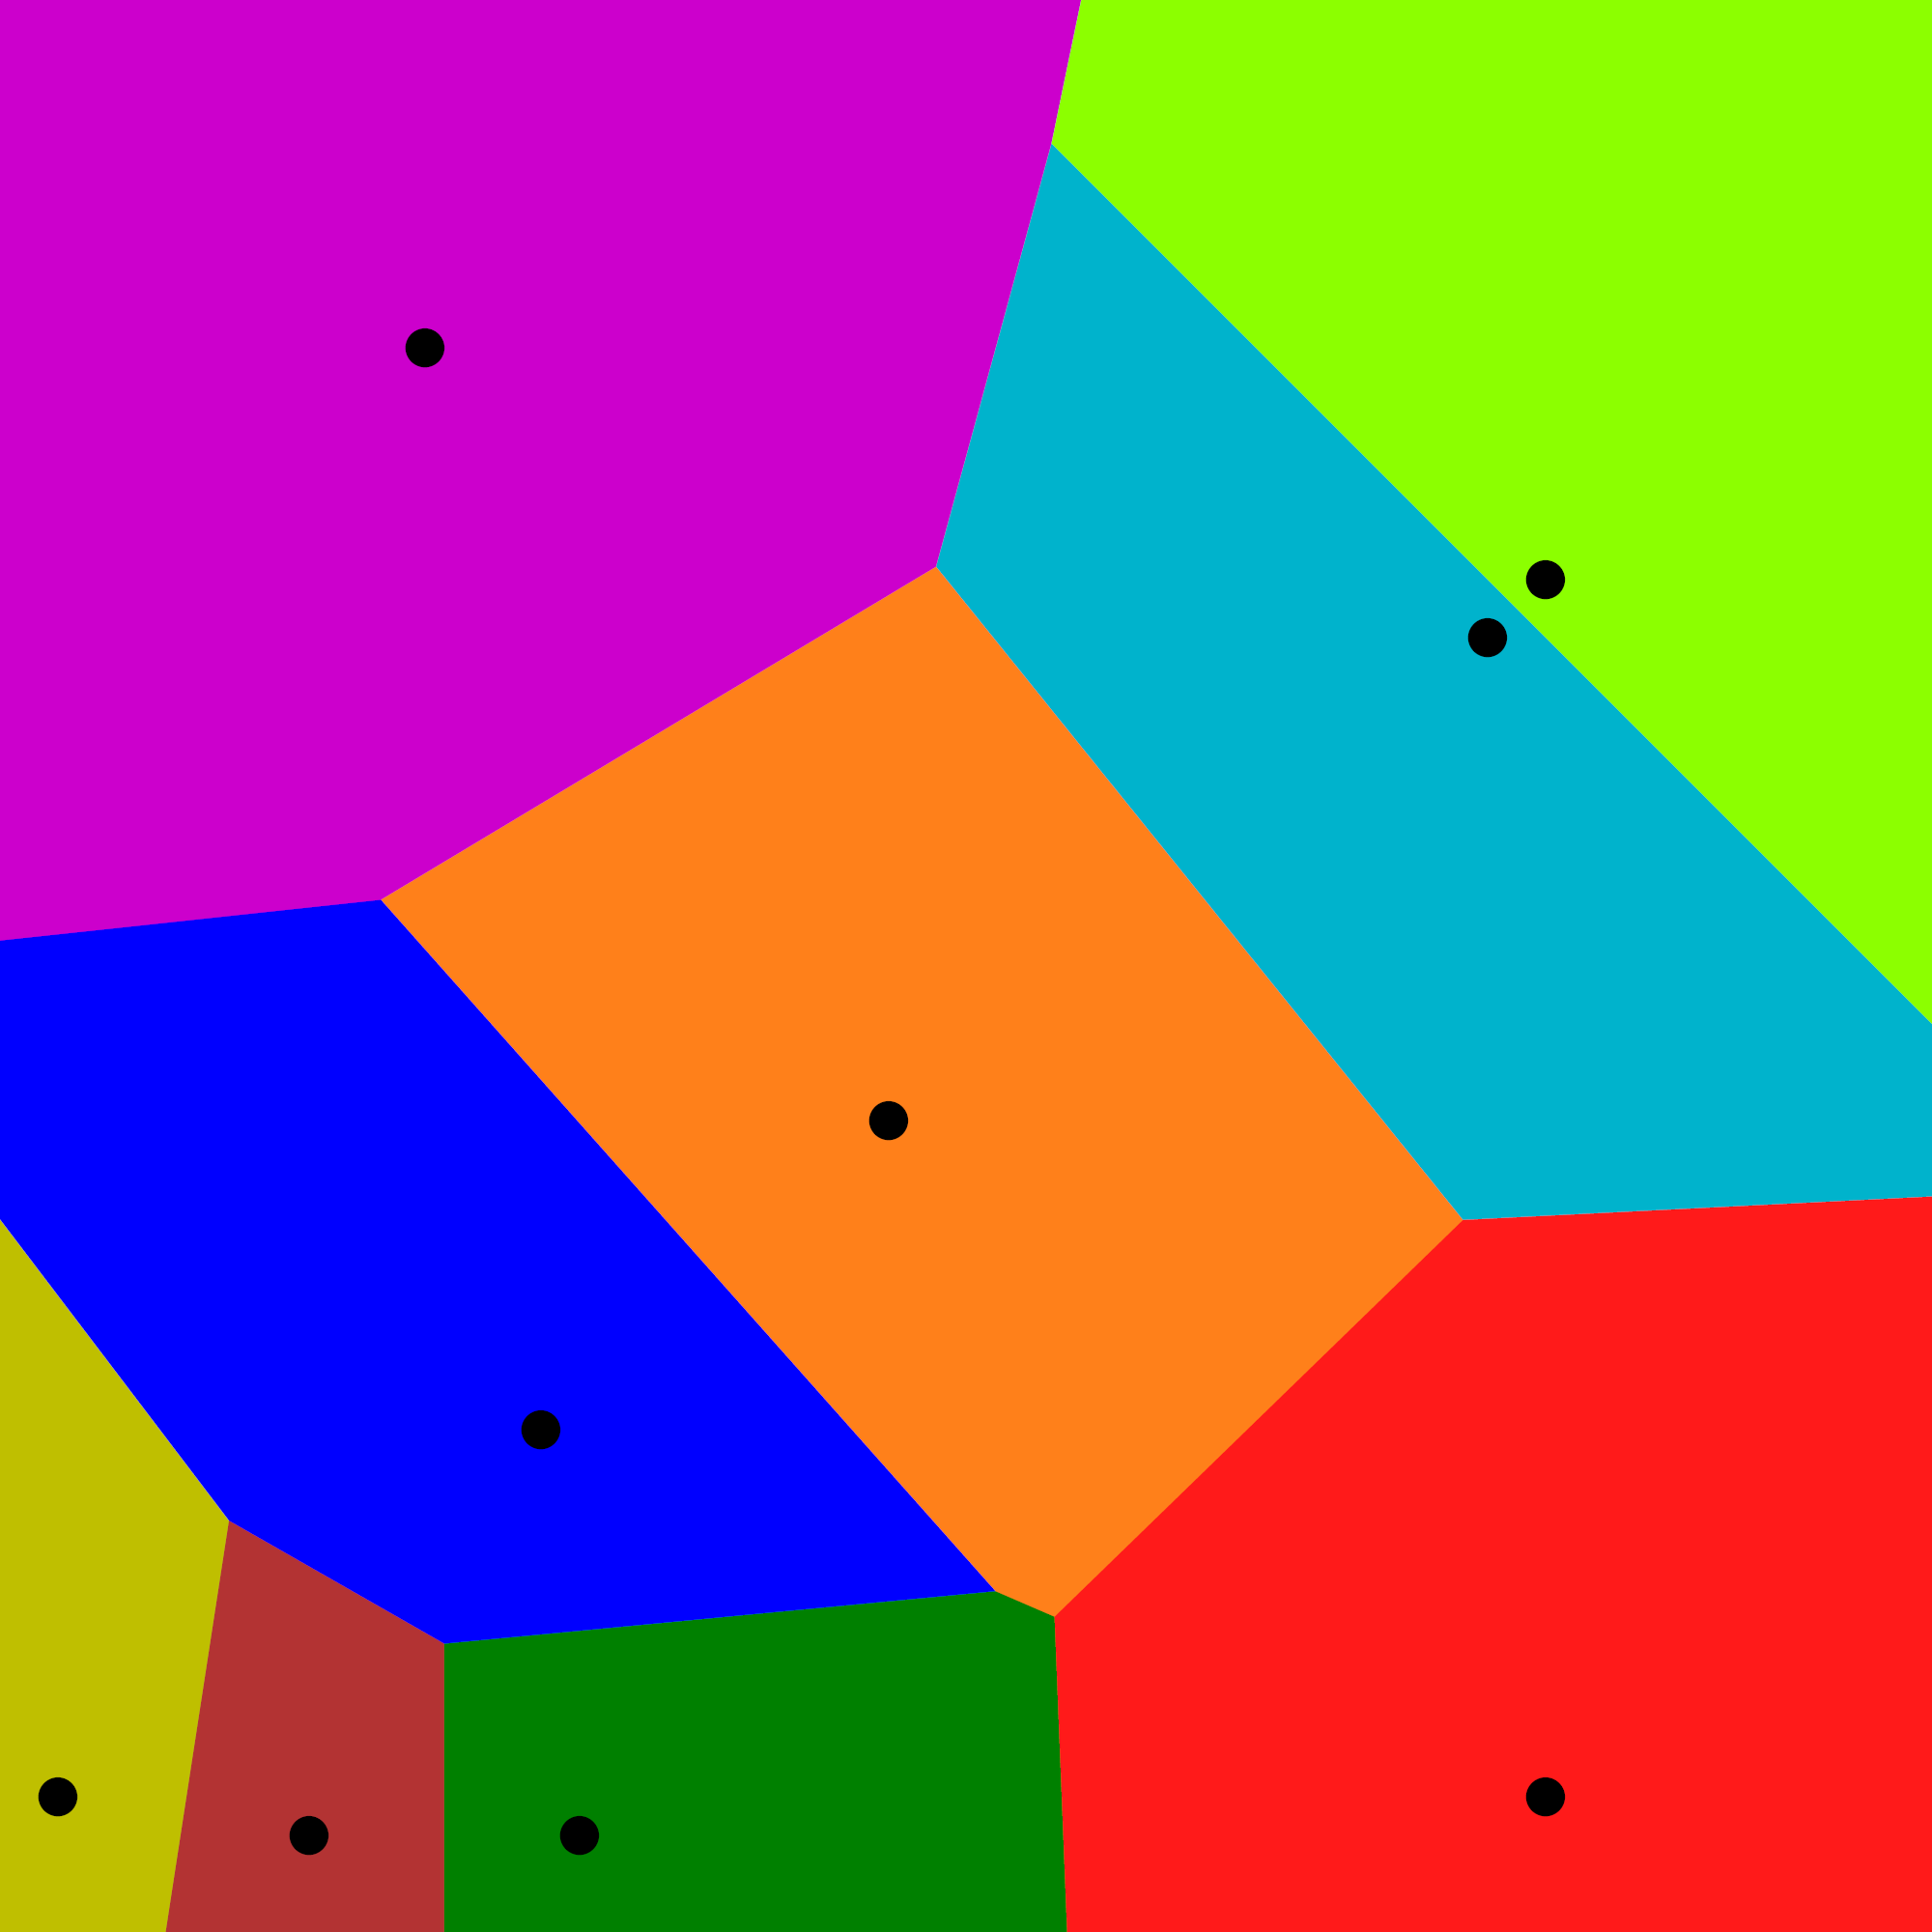 File:Voronoi static euclidean png - Wikimedia Commons